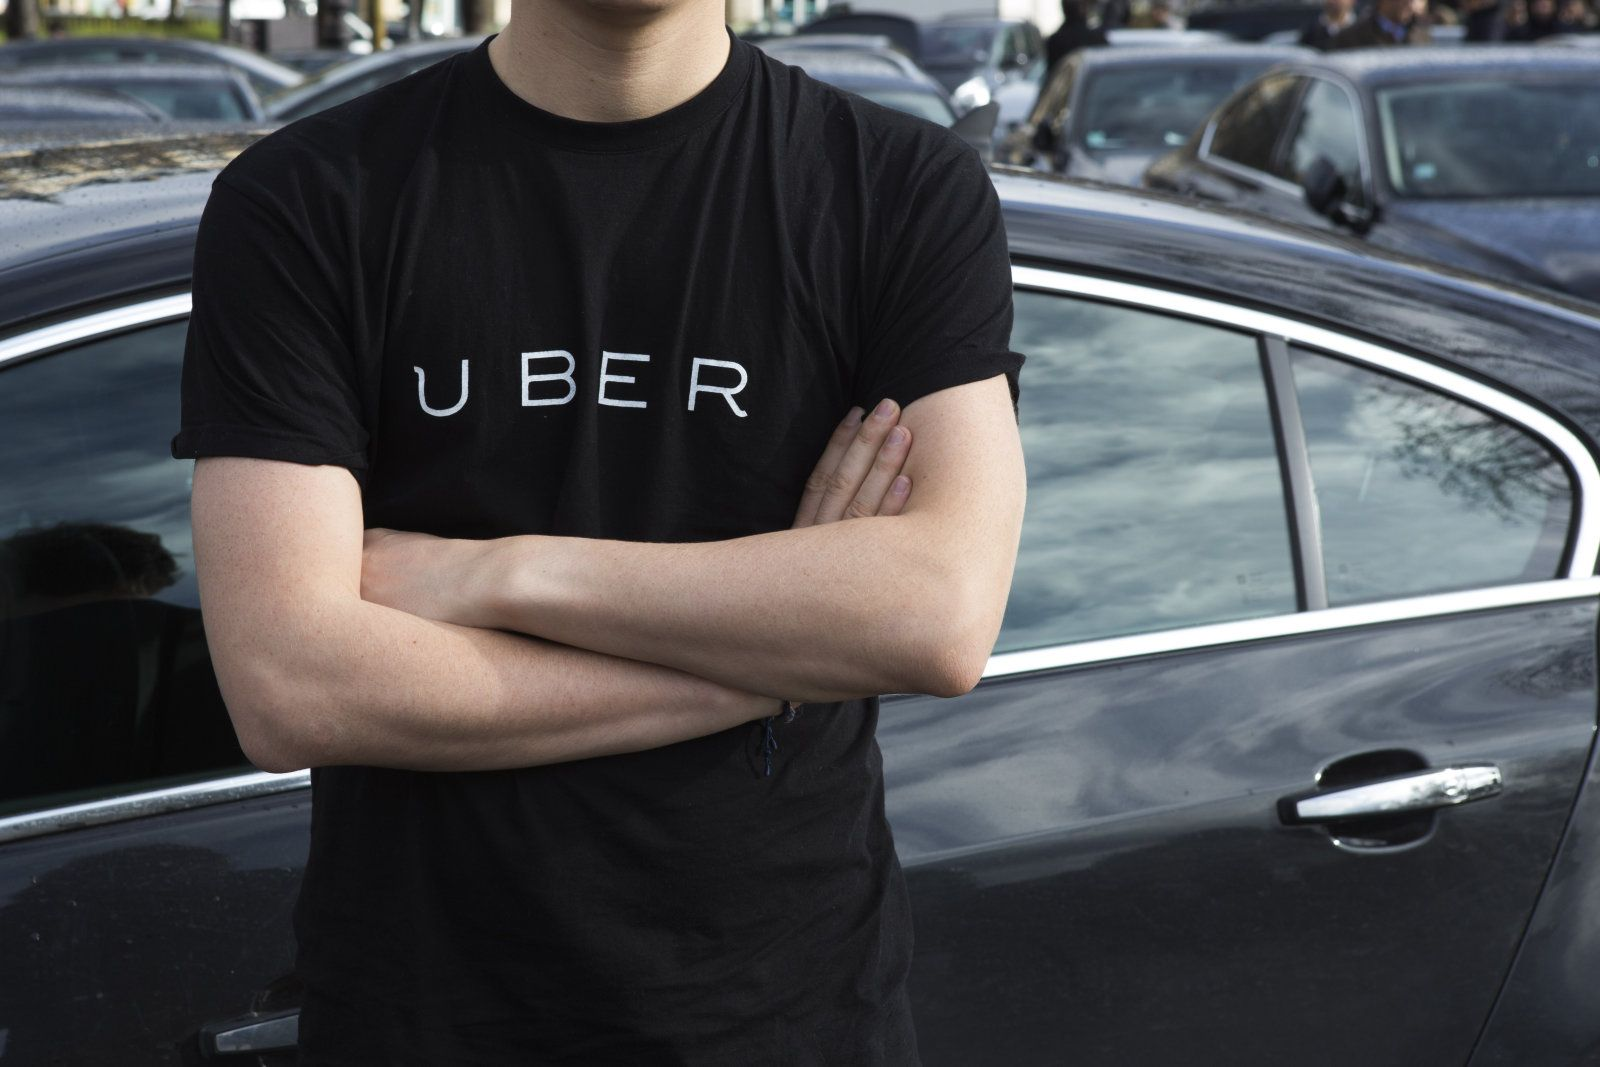 Uber Drivers In The Uk Entitled To Minimum Wage Tribunal Rules Uber Driver Uber Business Jury Trial